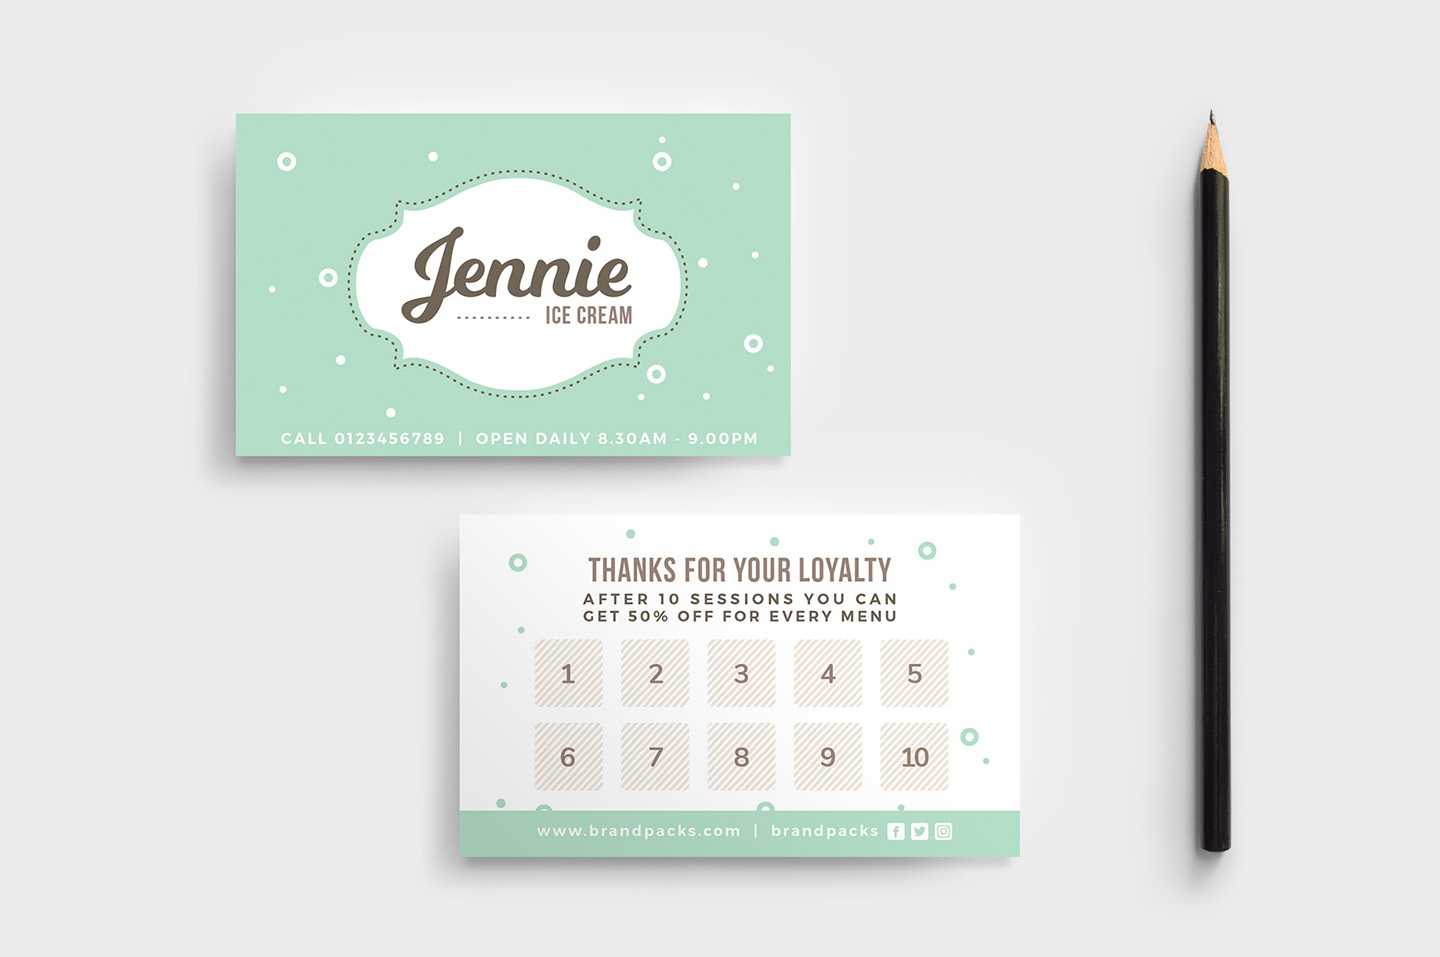 Free Loyalty Card Templates - Psd, Ai & Vector - Brandpacks Regarding Loyalty Card Design Template